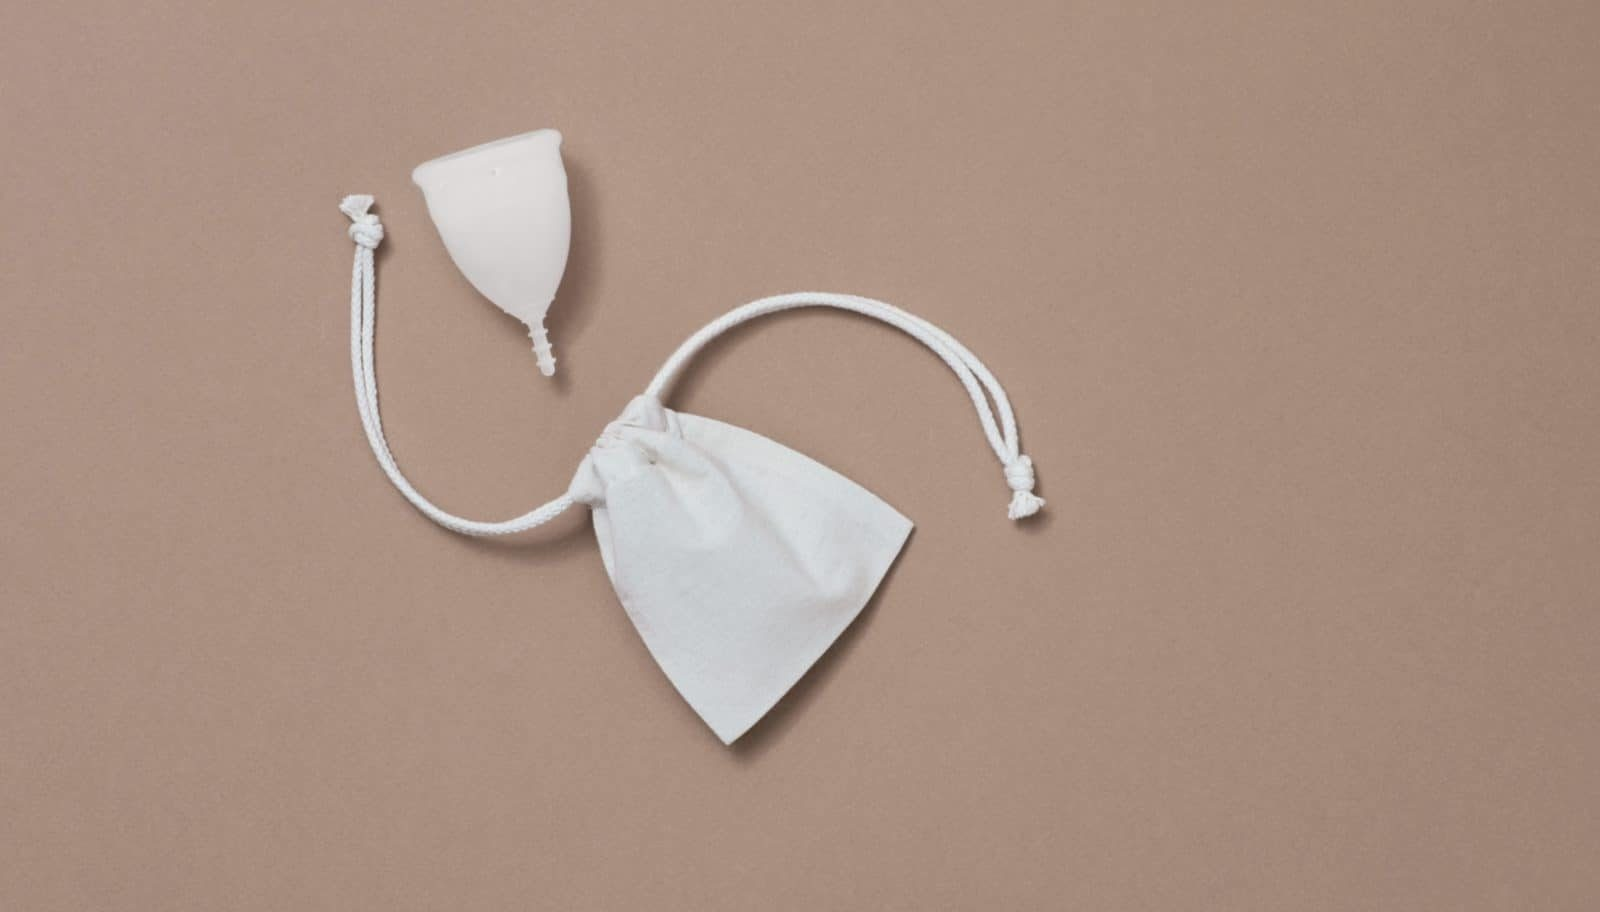 The new period – menstrual cup